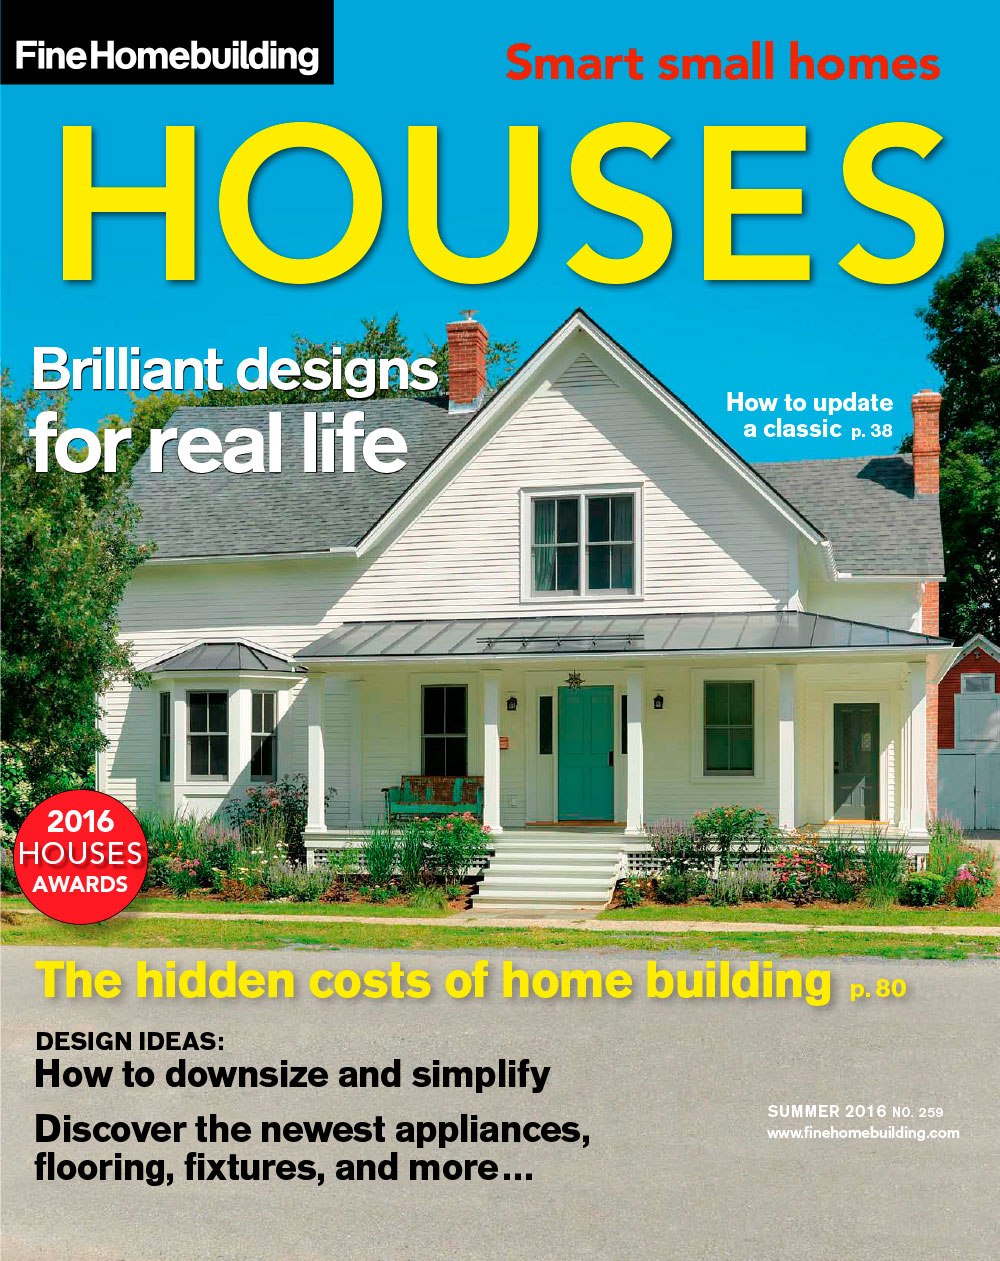 Issue 259 u2013 HOUSES 2016 Issue 259